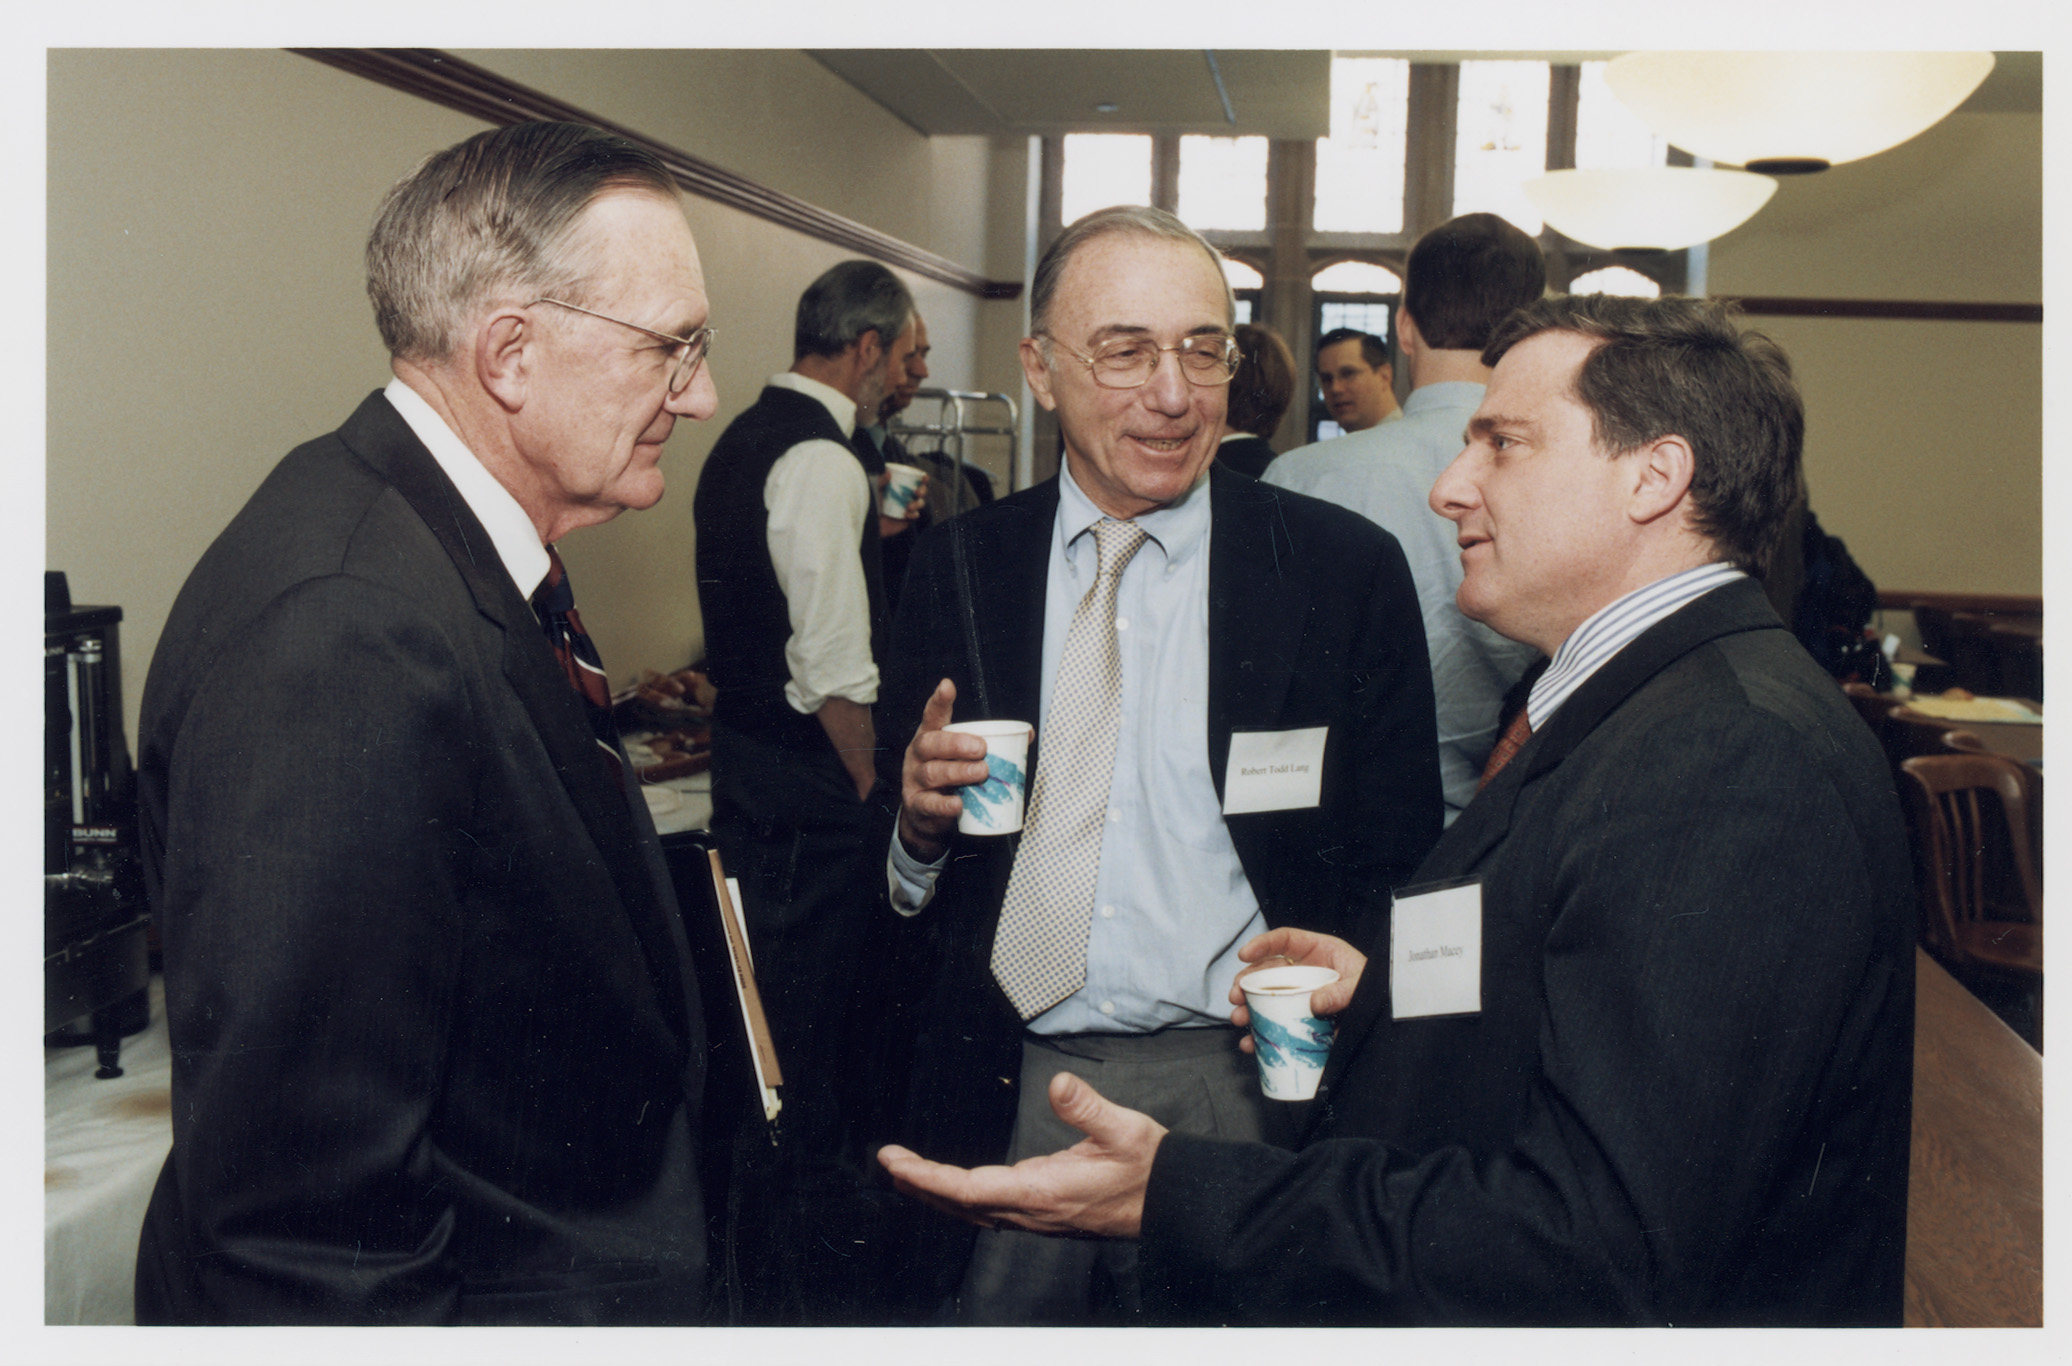 Curtis H. Barnette '62, Robert Todd Lang '47, and Cornell Law Prof. Jonathan Macey '82